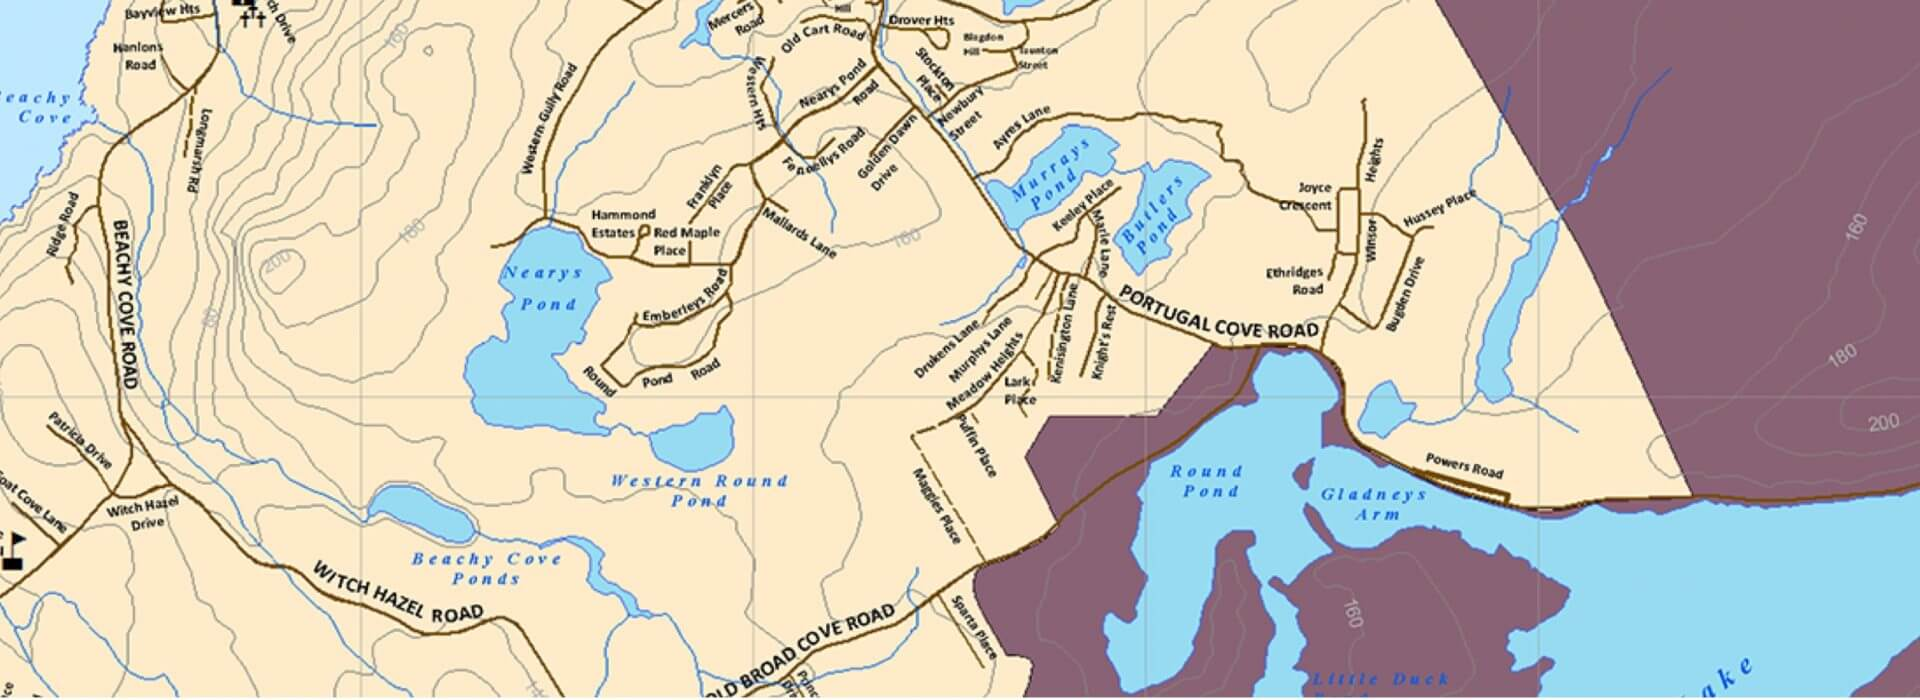 Town Of Portugal Cove StPhilips - Portugal cove nl map